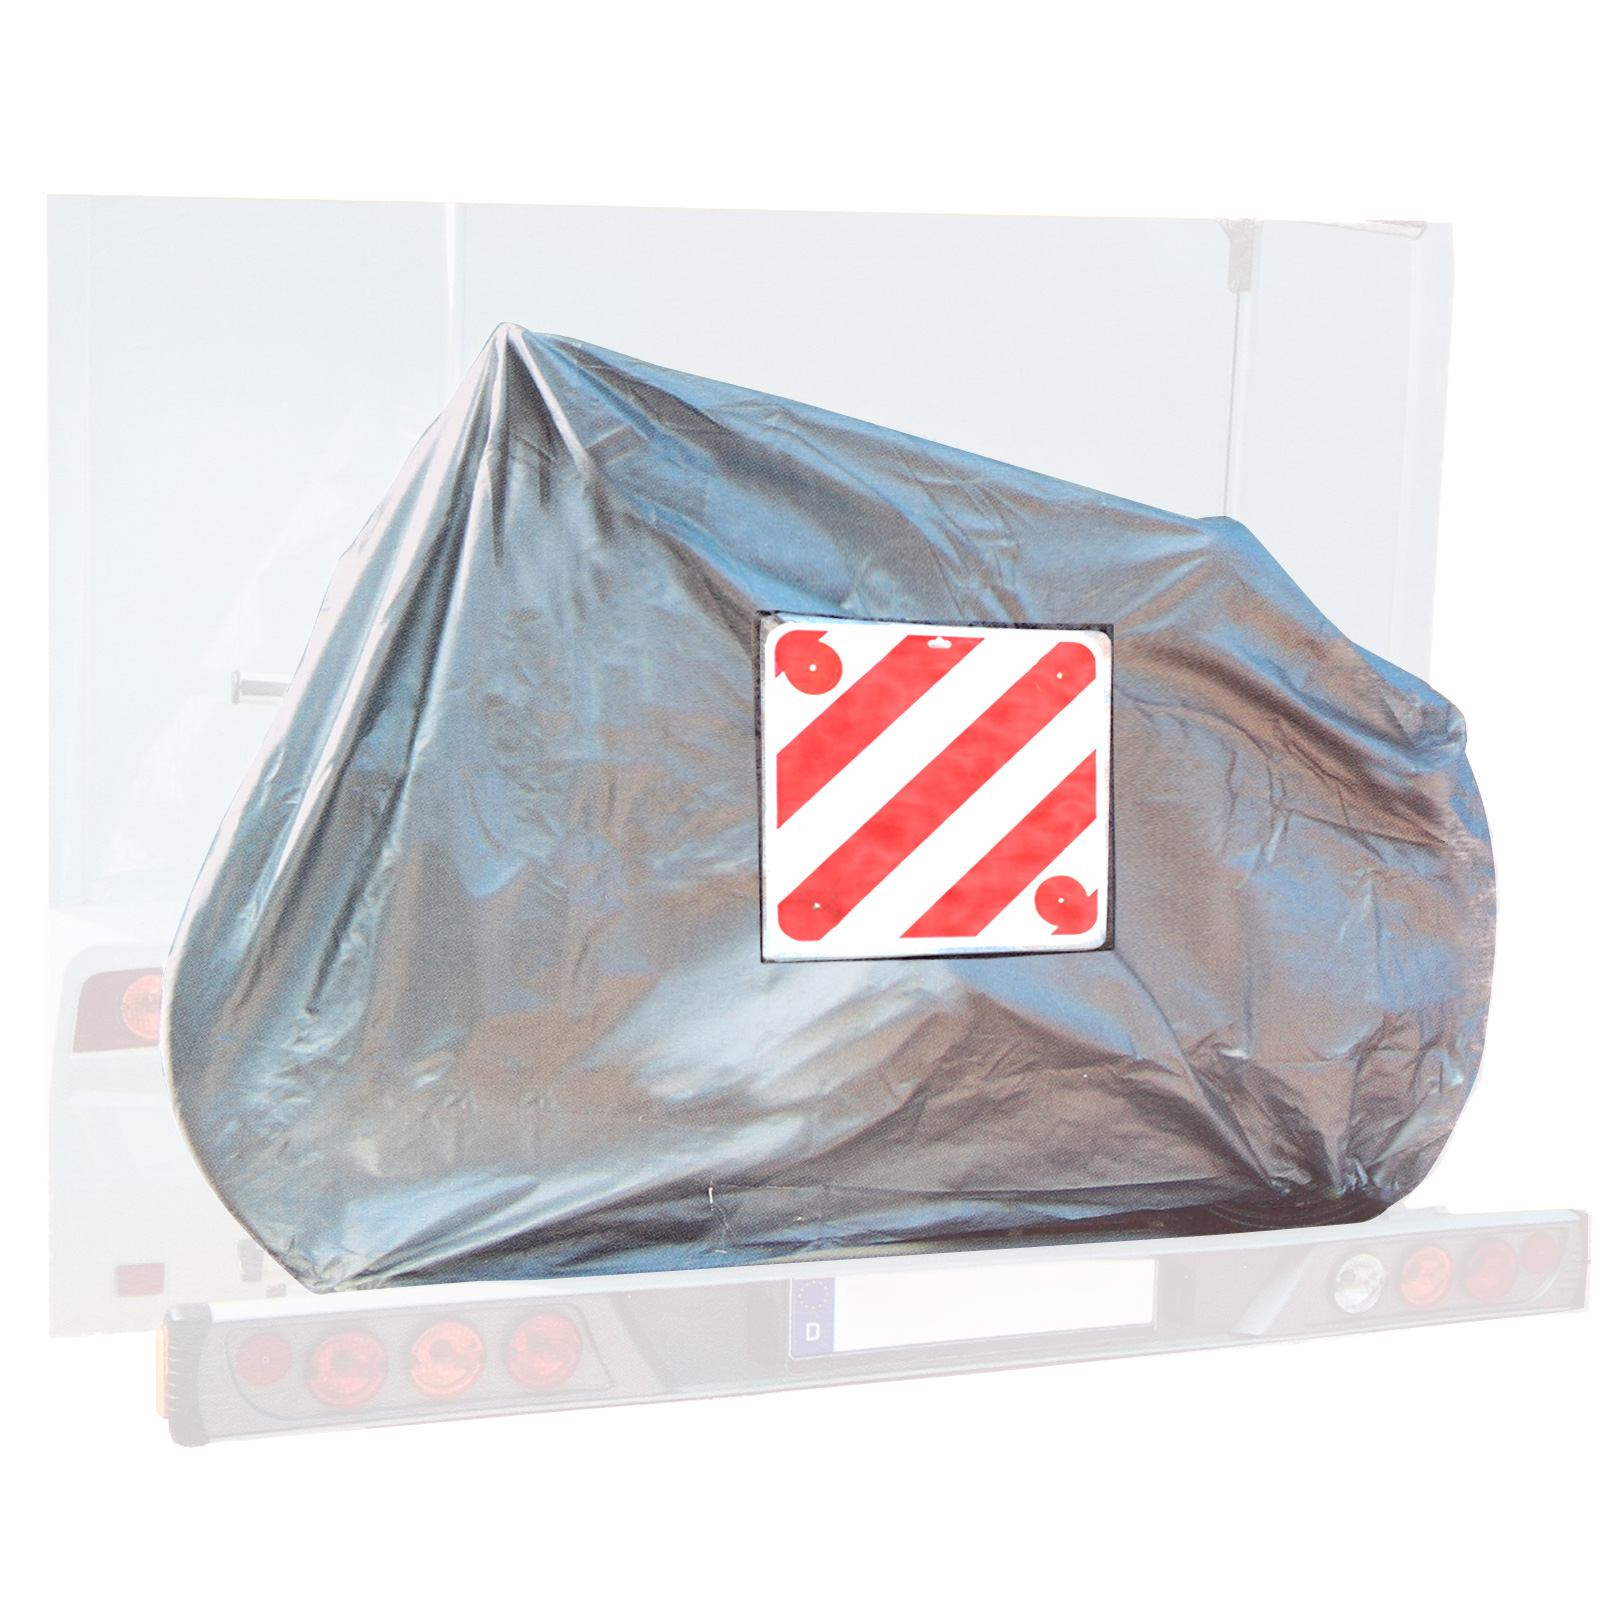 Bicycle cover for 2 bicycles + warning sign plastic with reflectors